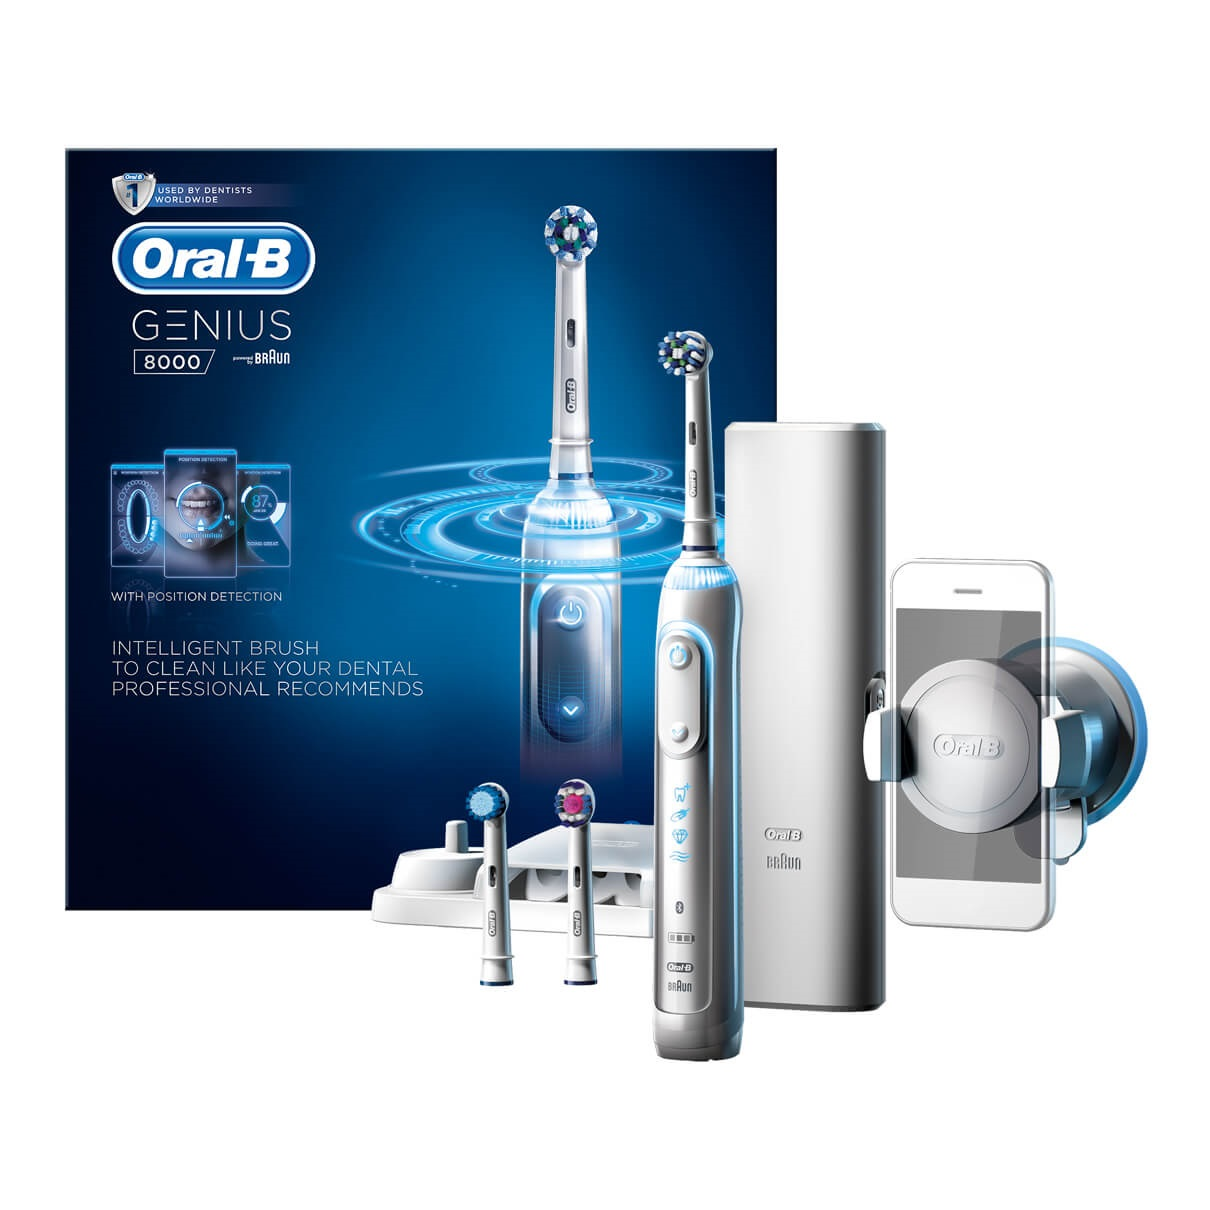 Oral-B-Genius-Pro-8000 electric toothbrush